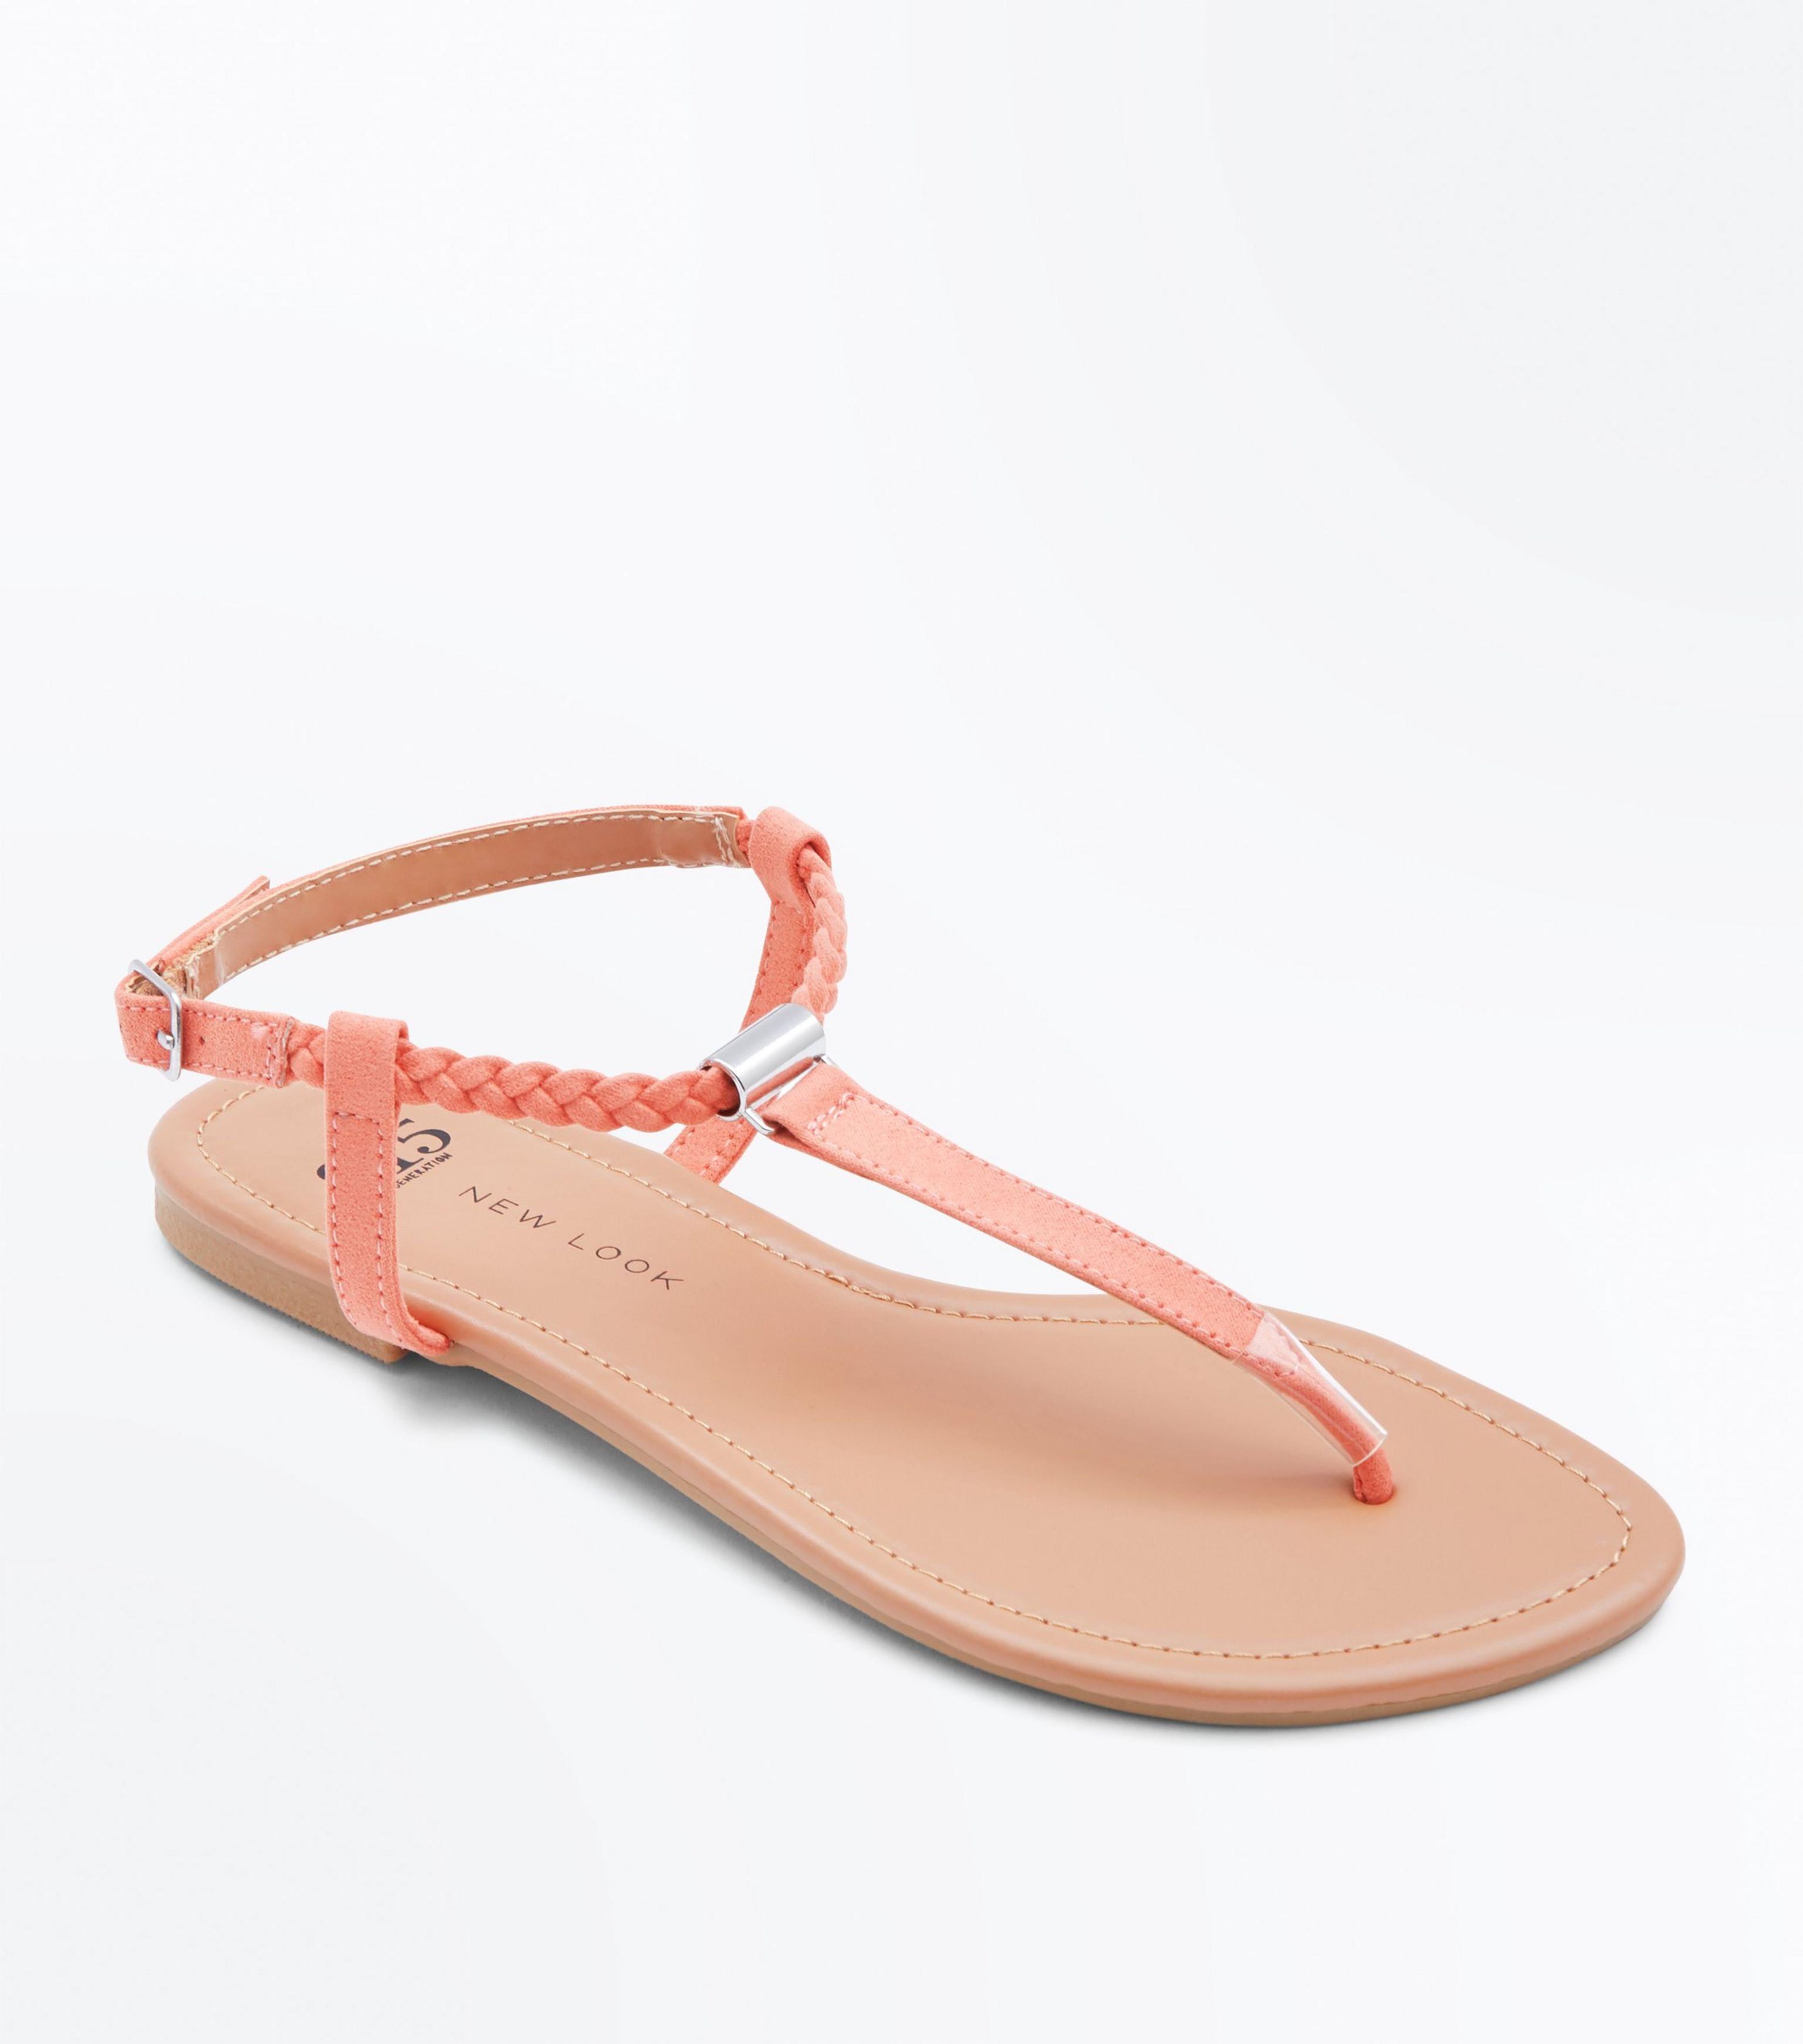 97f400939 New Look Teens Coral Plait Strap Flat Sandals in Pink - Lyst